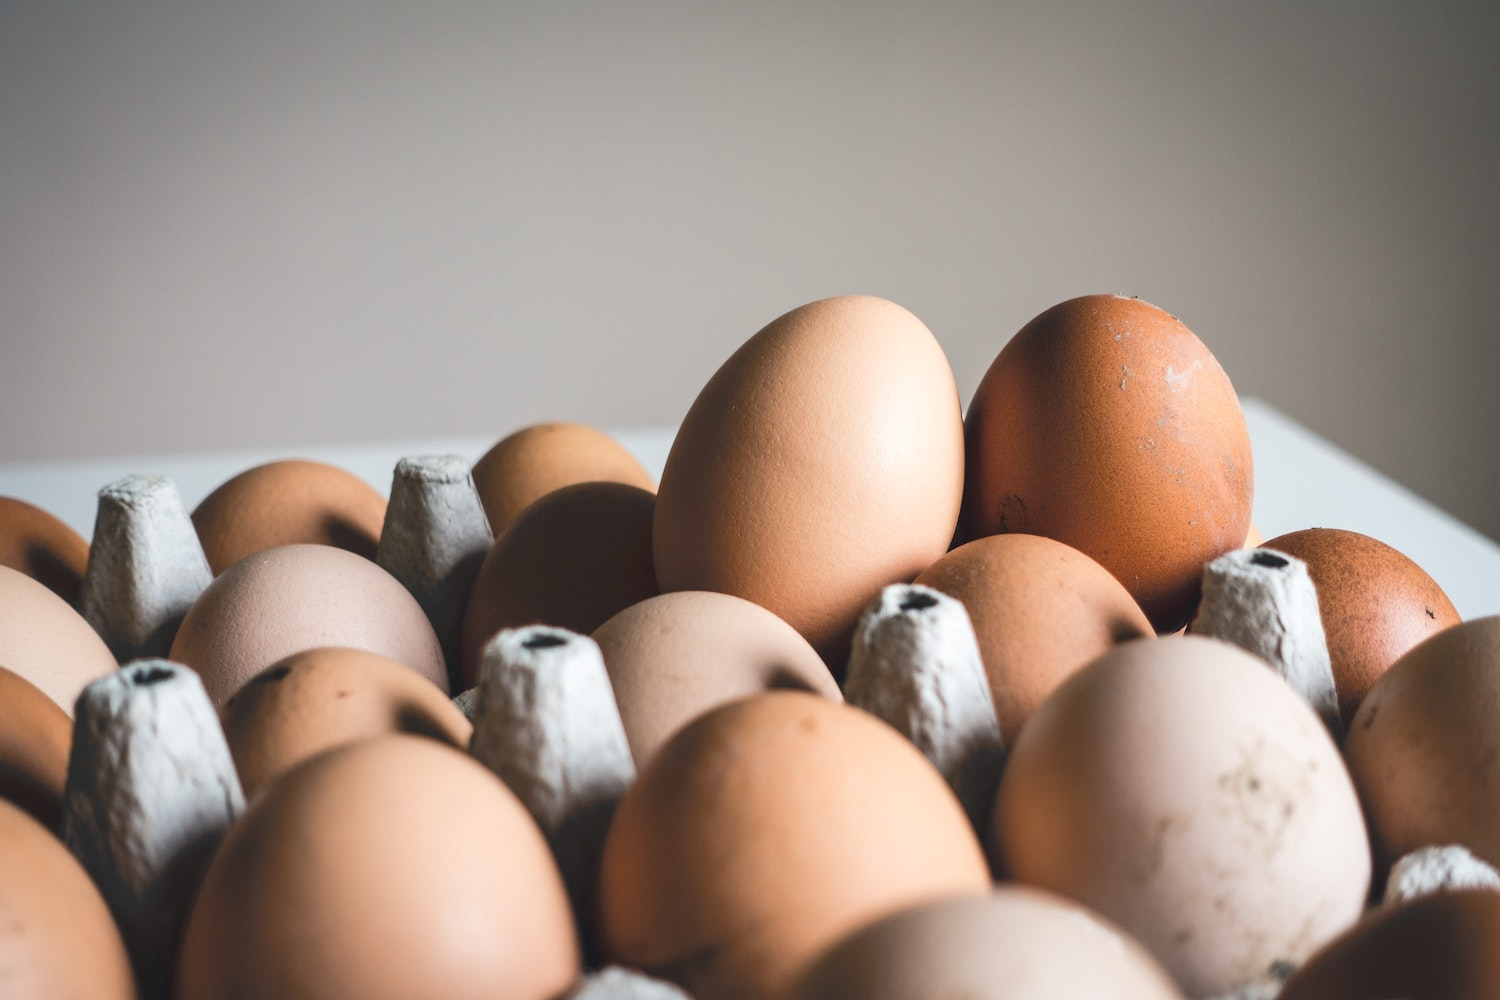 Texas accuses US' largest egg producer of price gouging